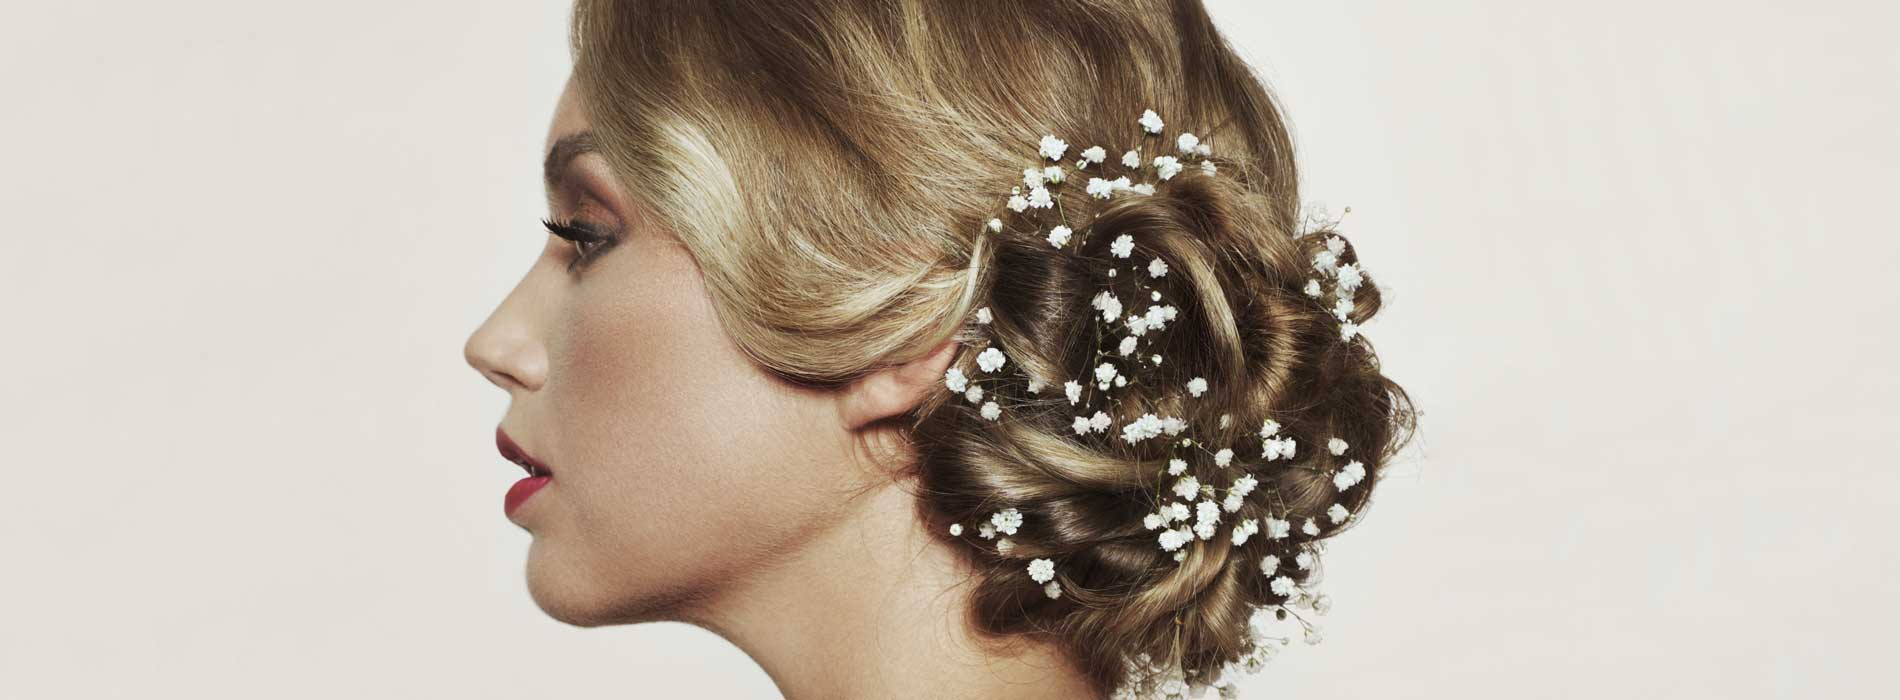 Francesco Group Services - Bridal and Occasions